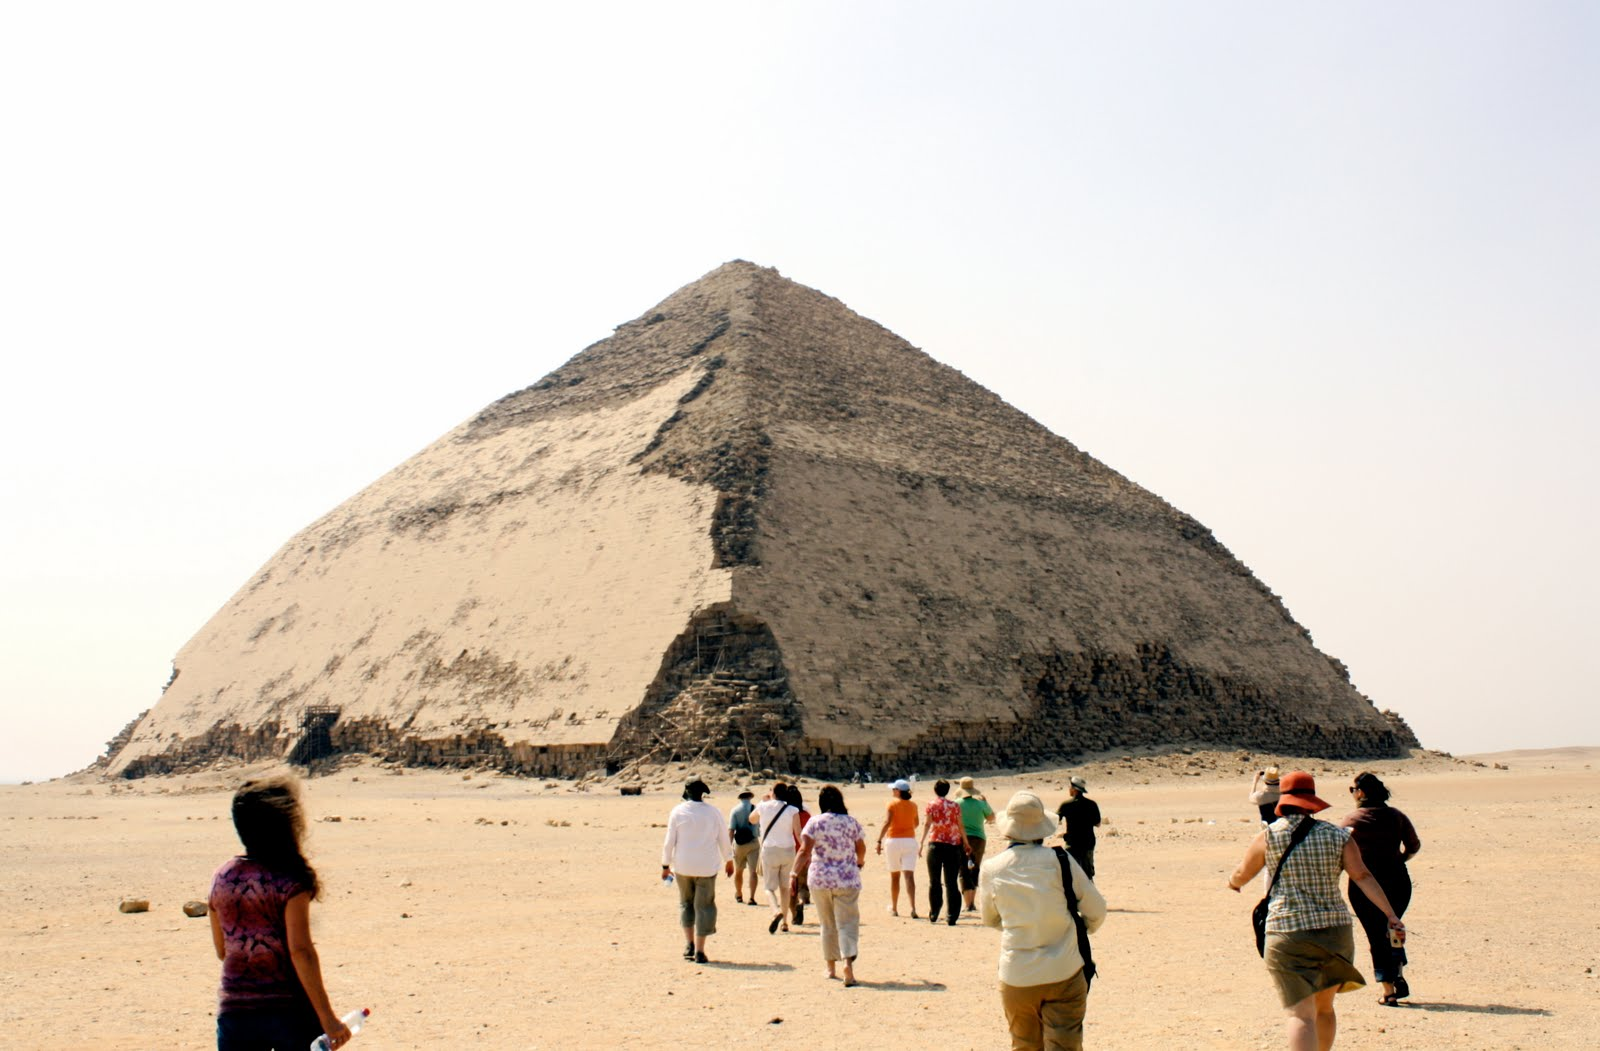 travelling back in time to ancient egypt